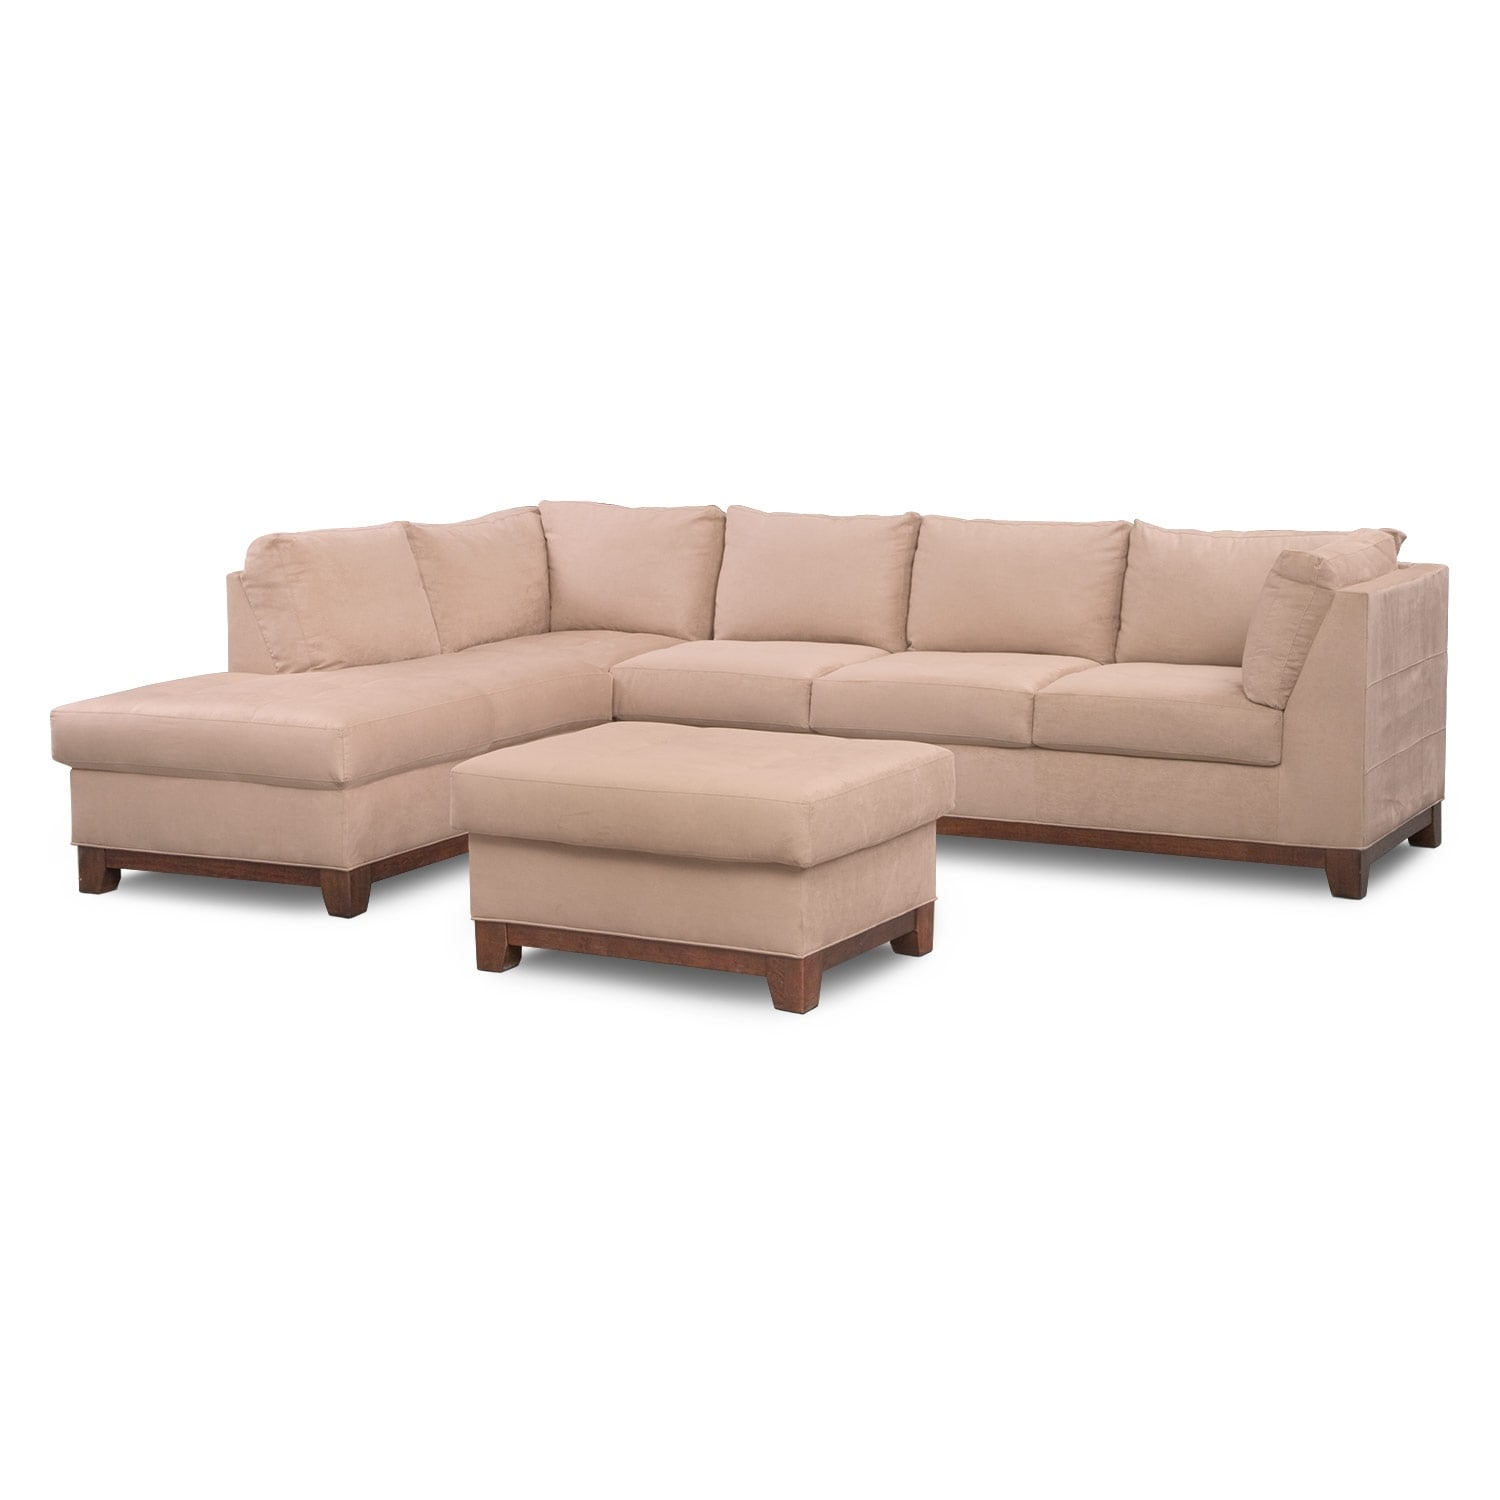 Living Room Furniture - Soho 2-Piece Sectional with Left-Facing Chaise and Ottoman - Cobblestone